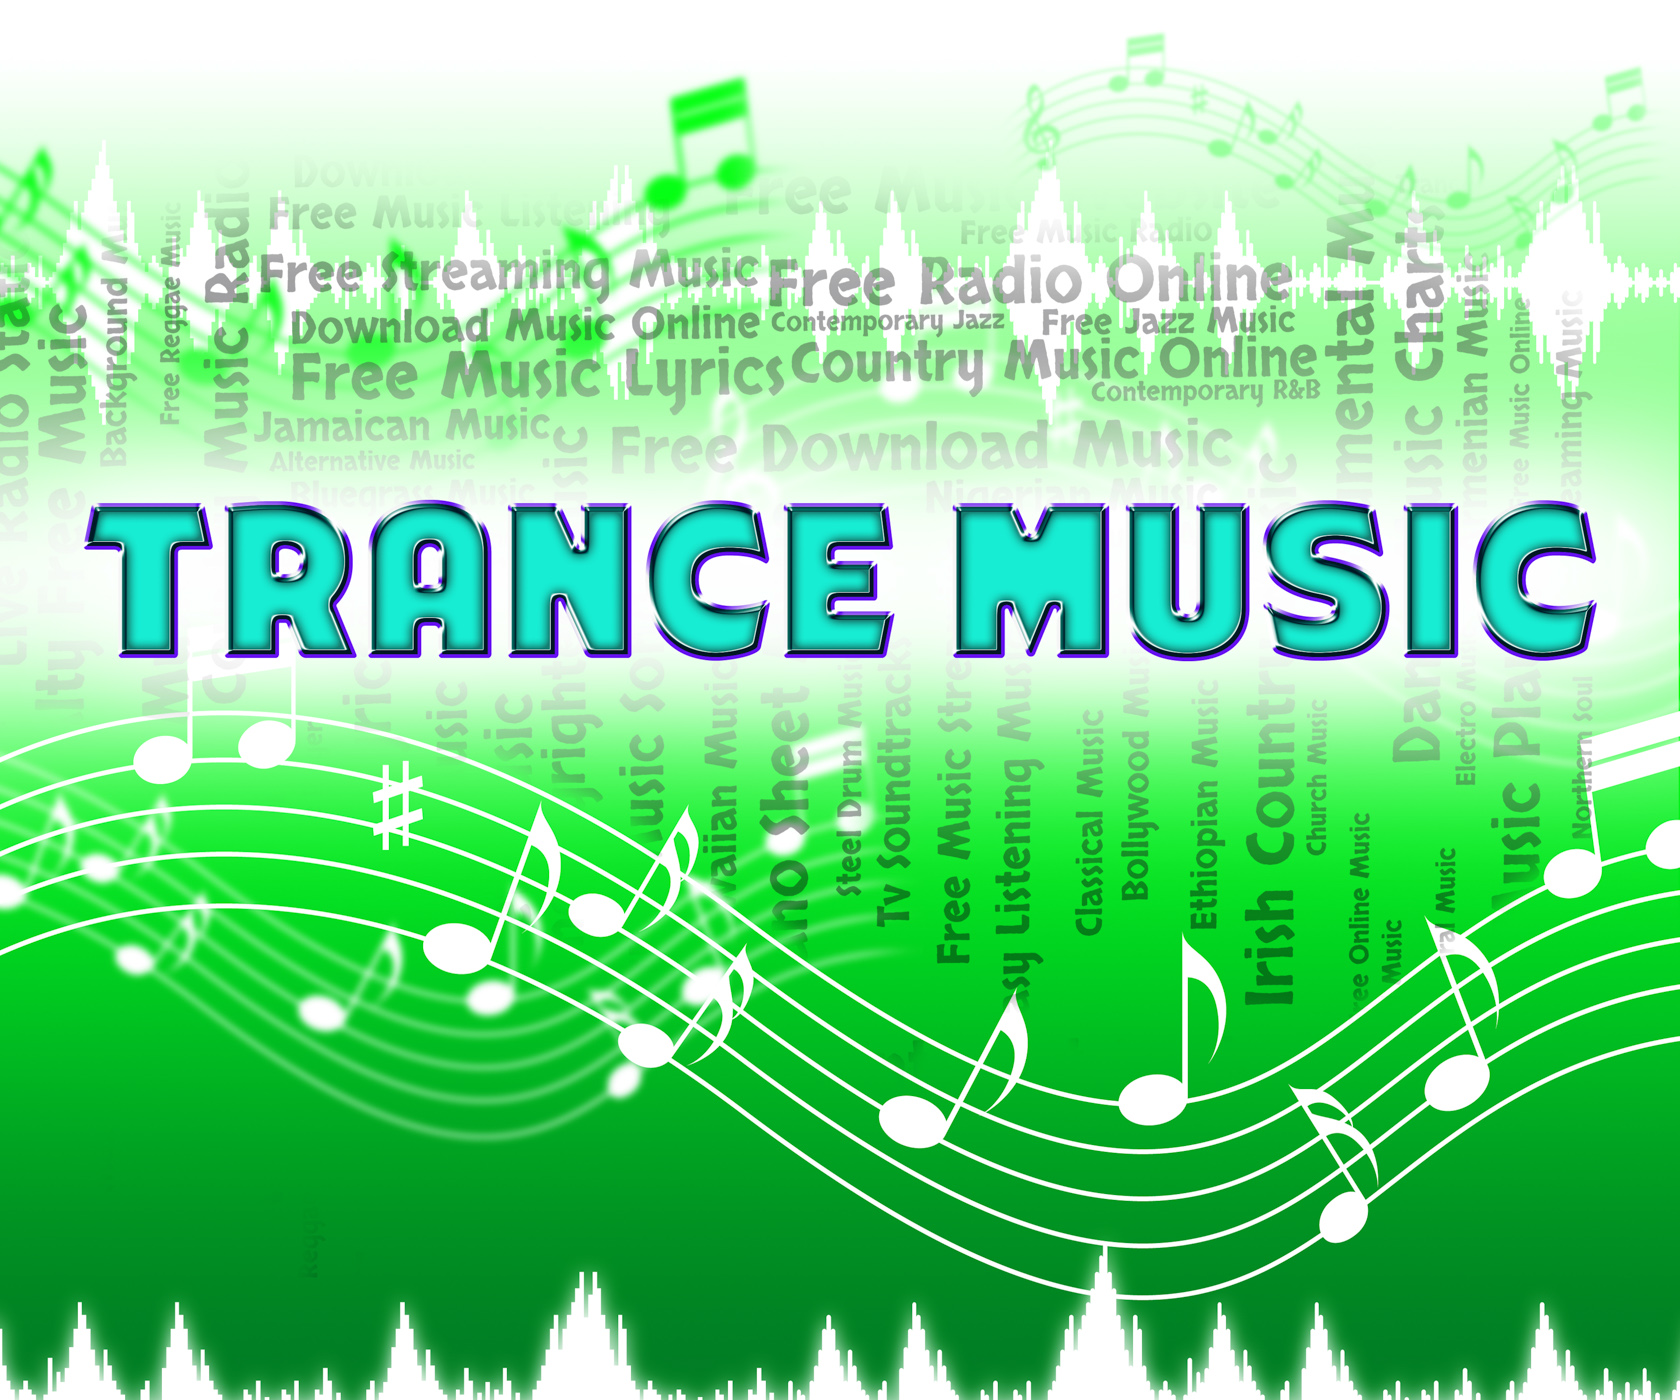 Trance music means sound tracks and audio photo